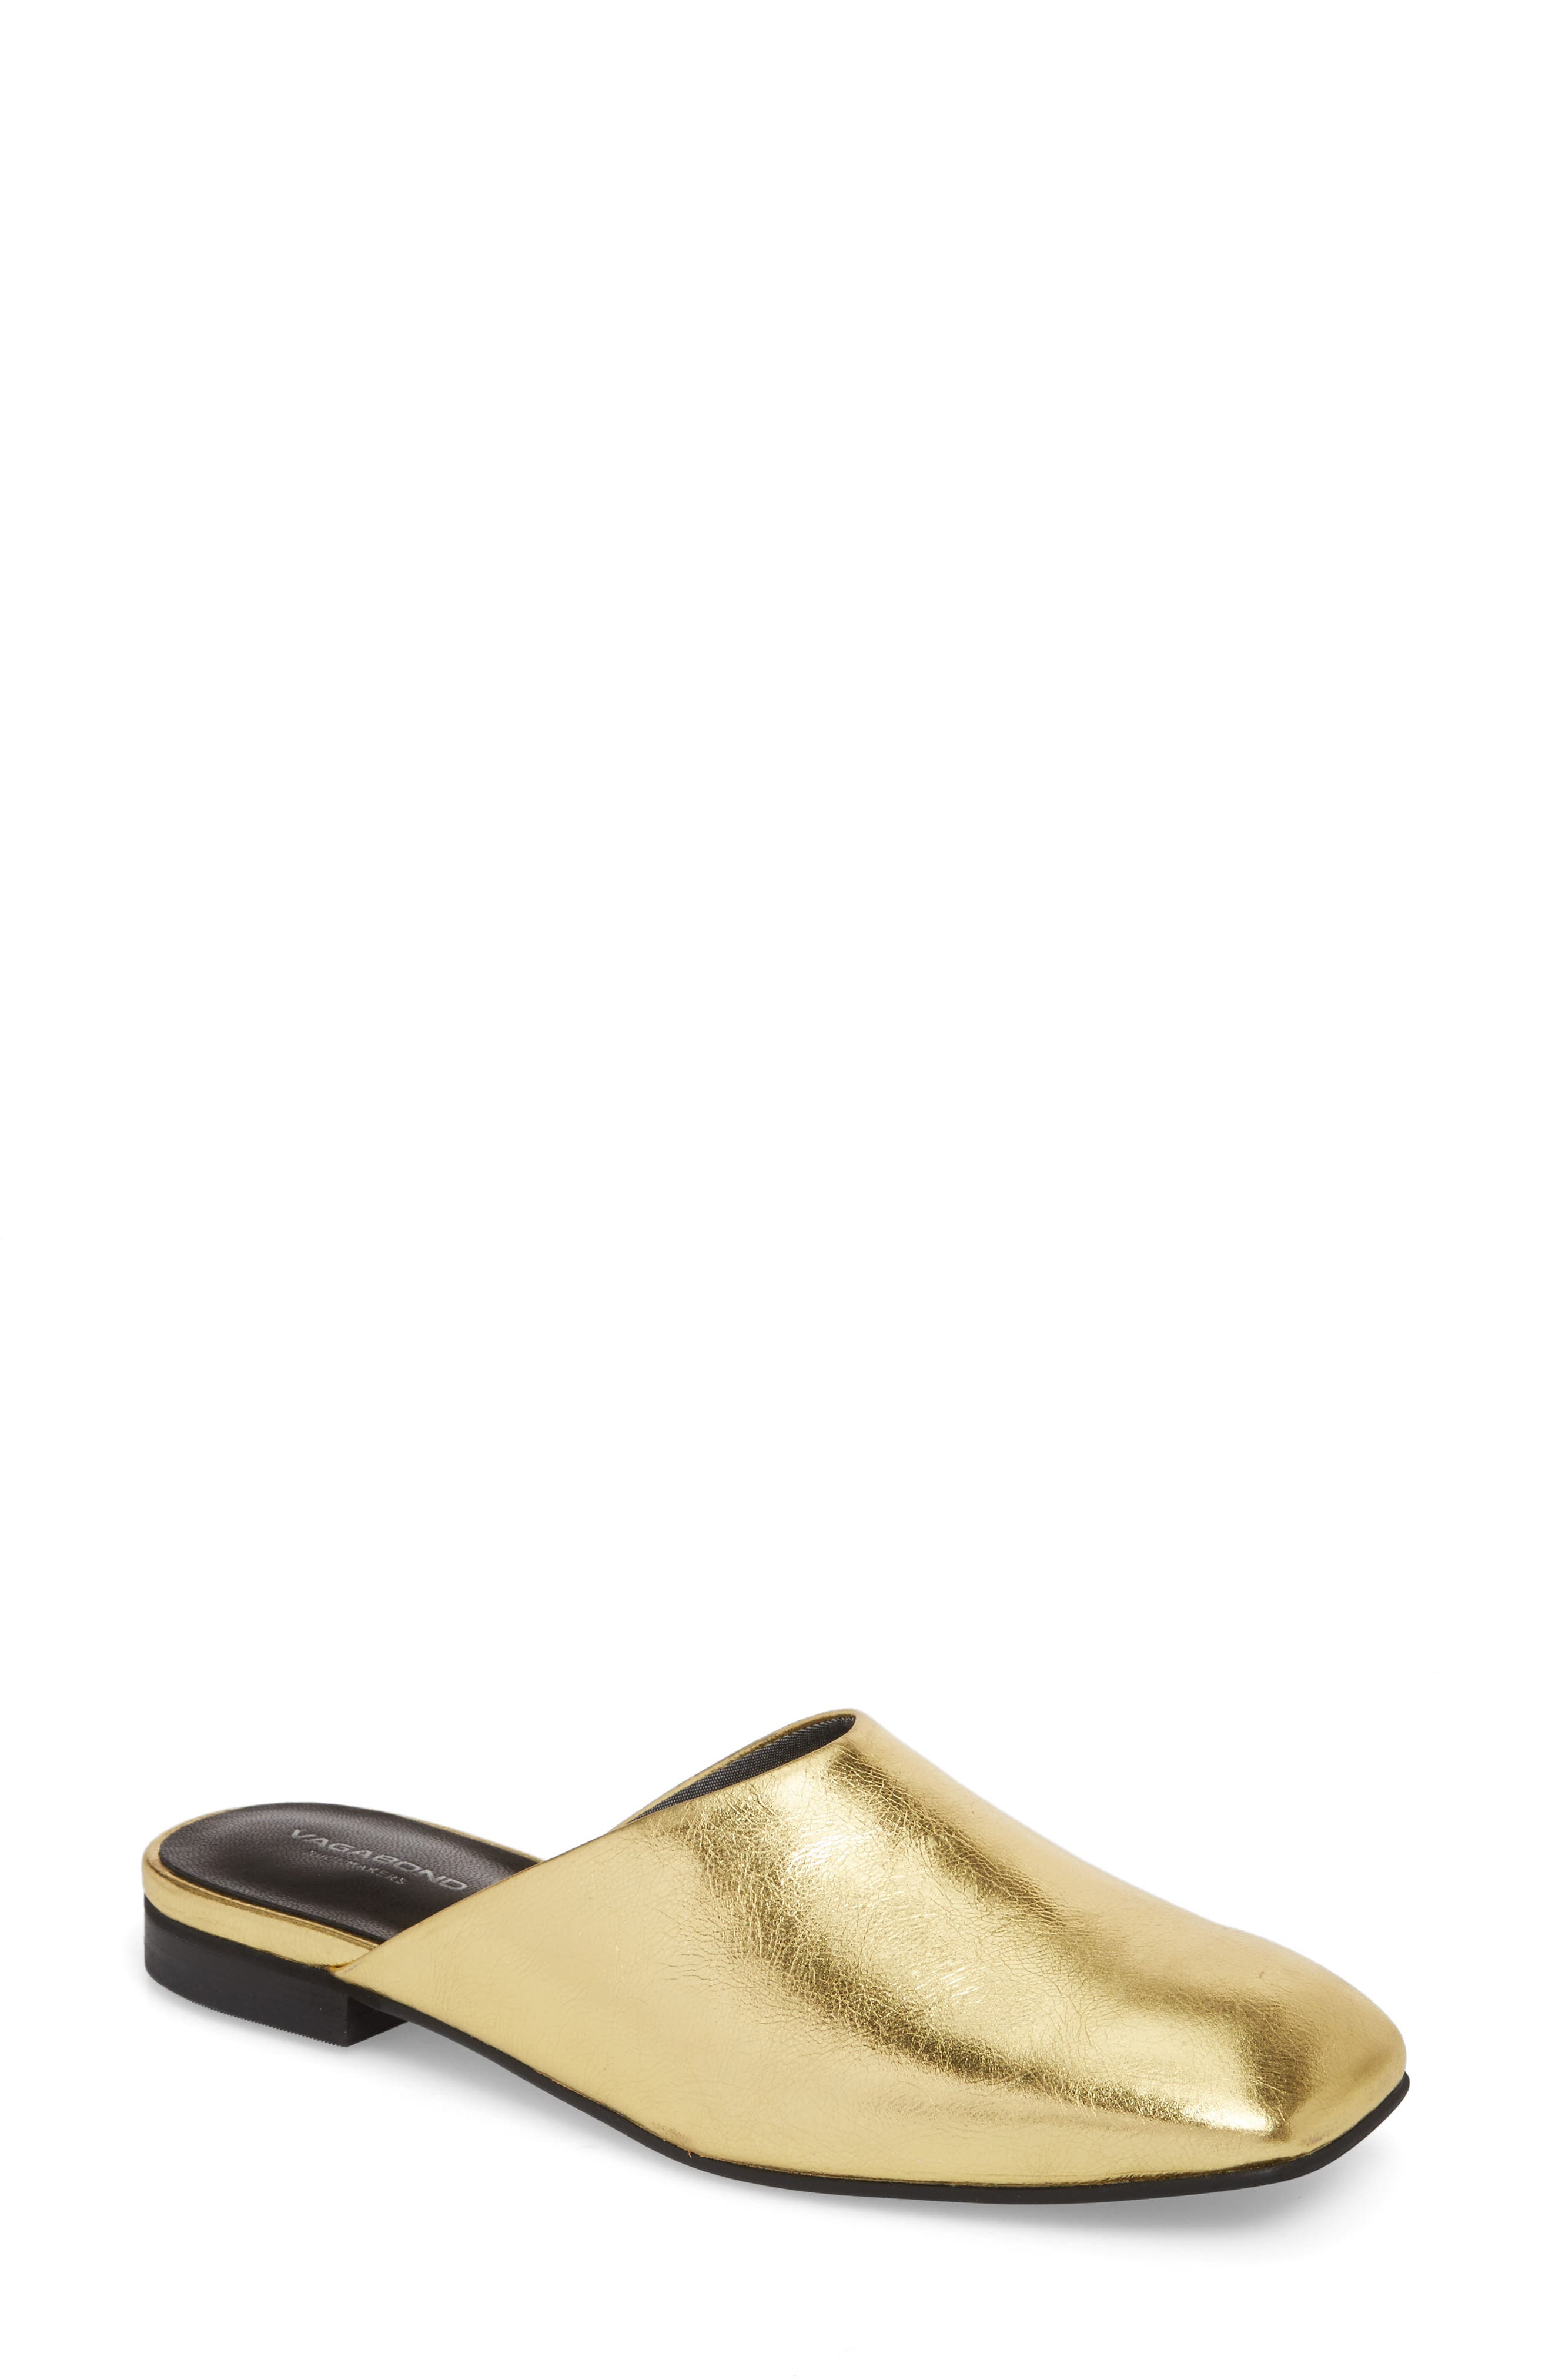 Dolores Mule,                             Main thumbnail 1, color,                             Gold Leather